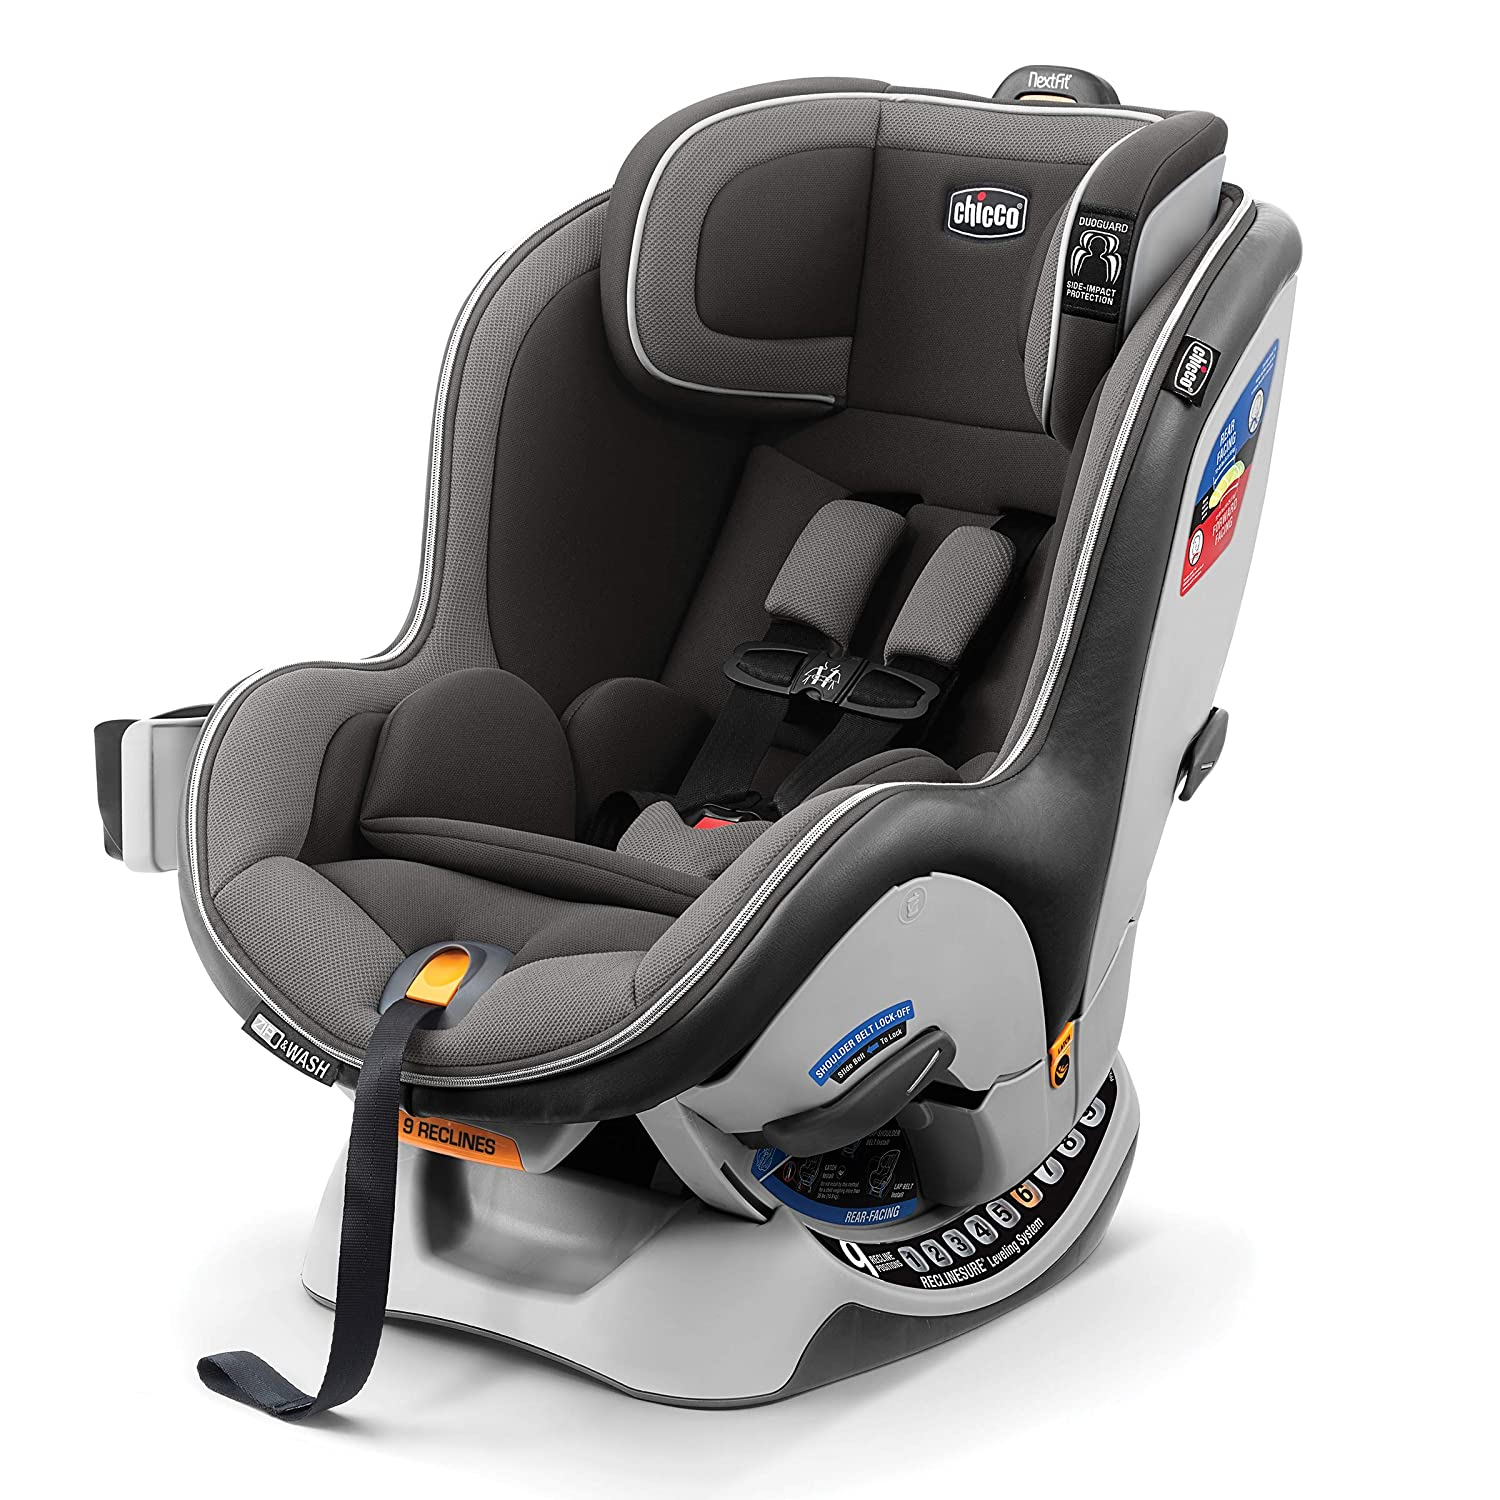 Top 9 Best Convertible Car Seat for Newborns 2020 7